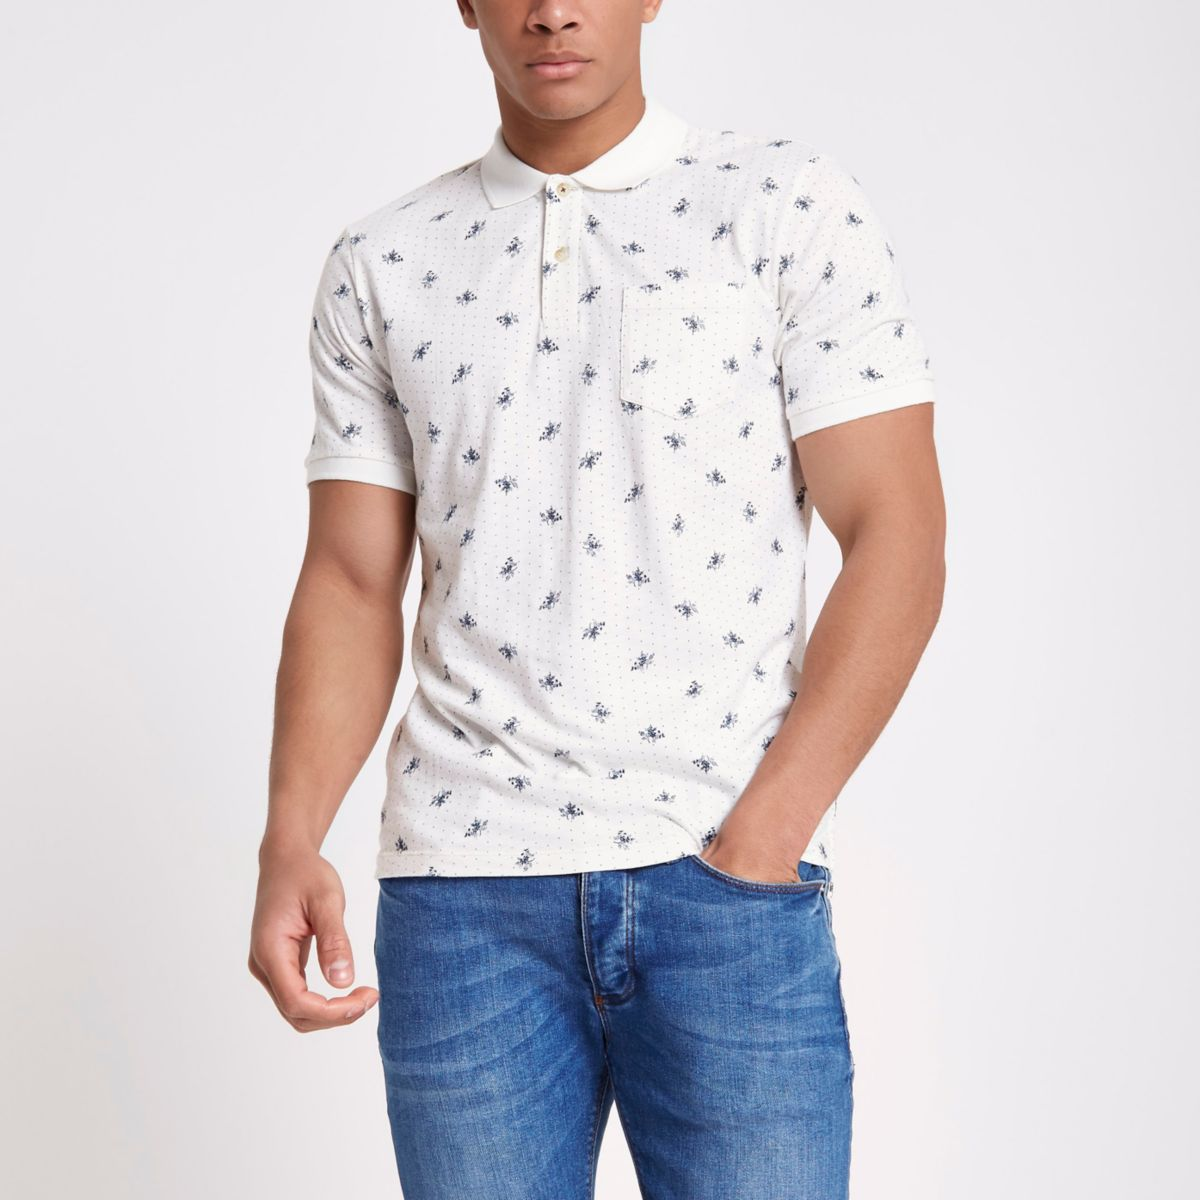 Jack & Jones white floral print polo shirt